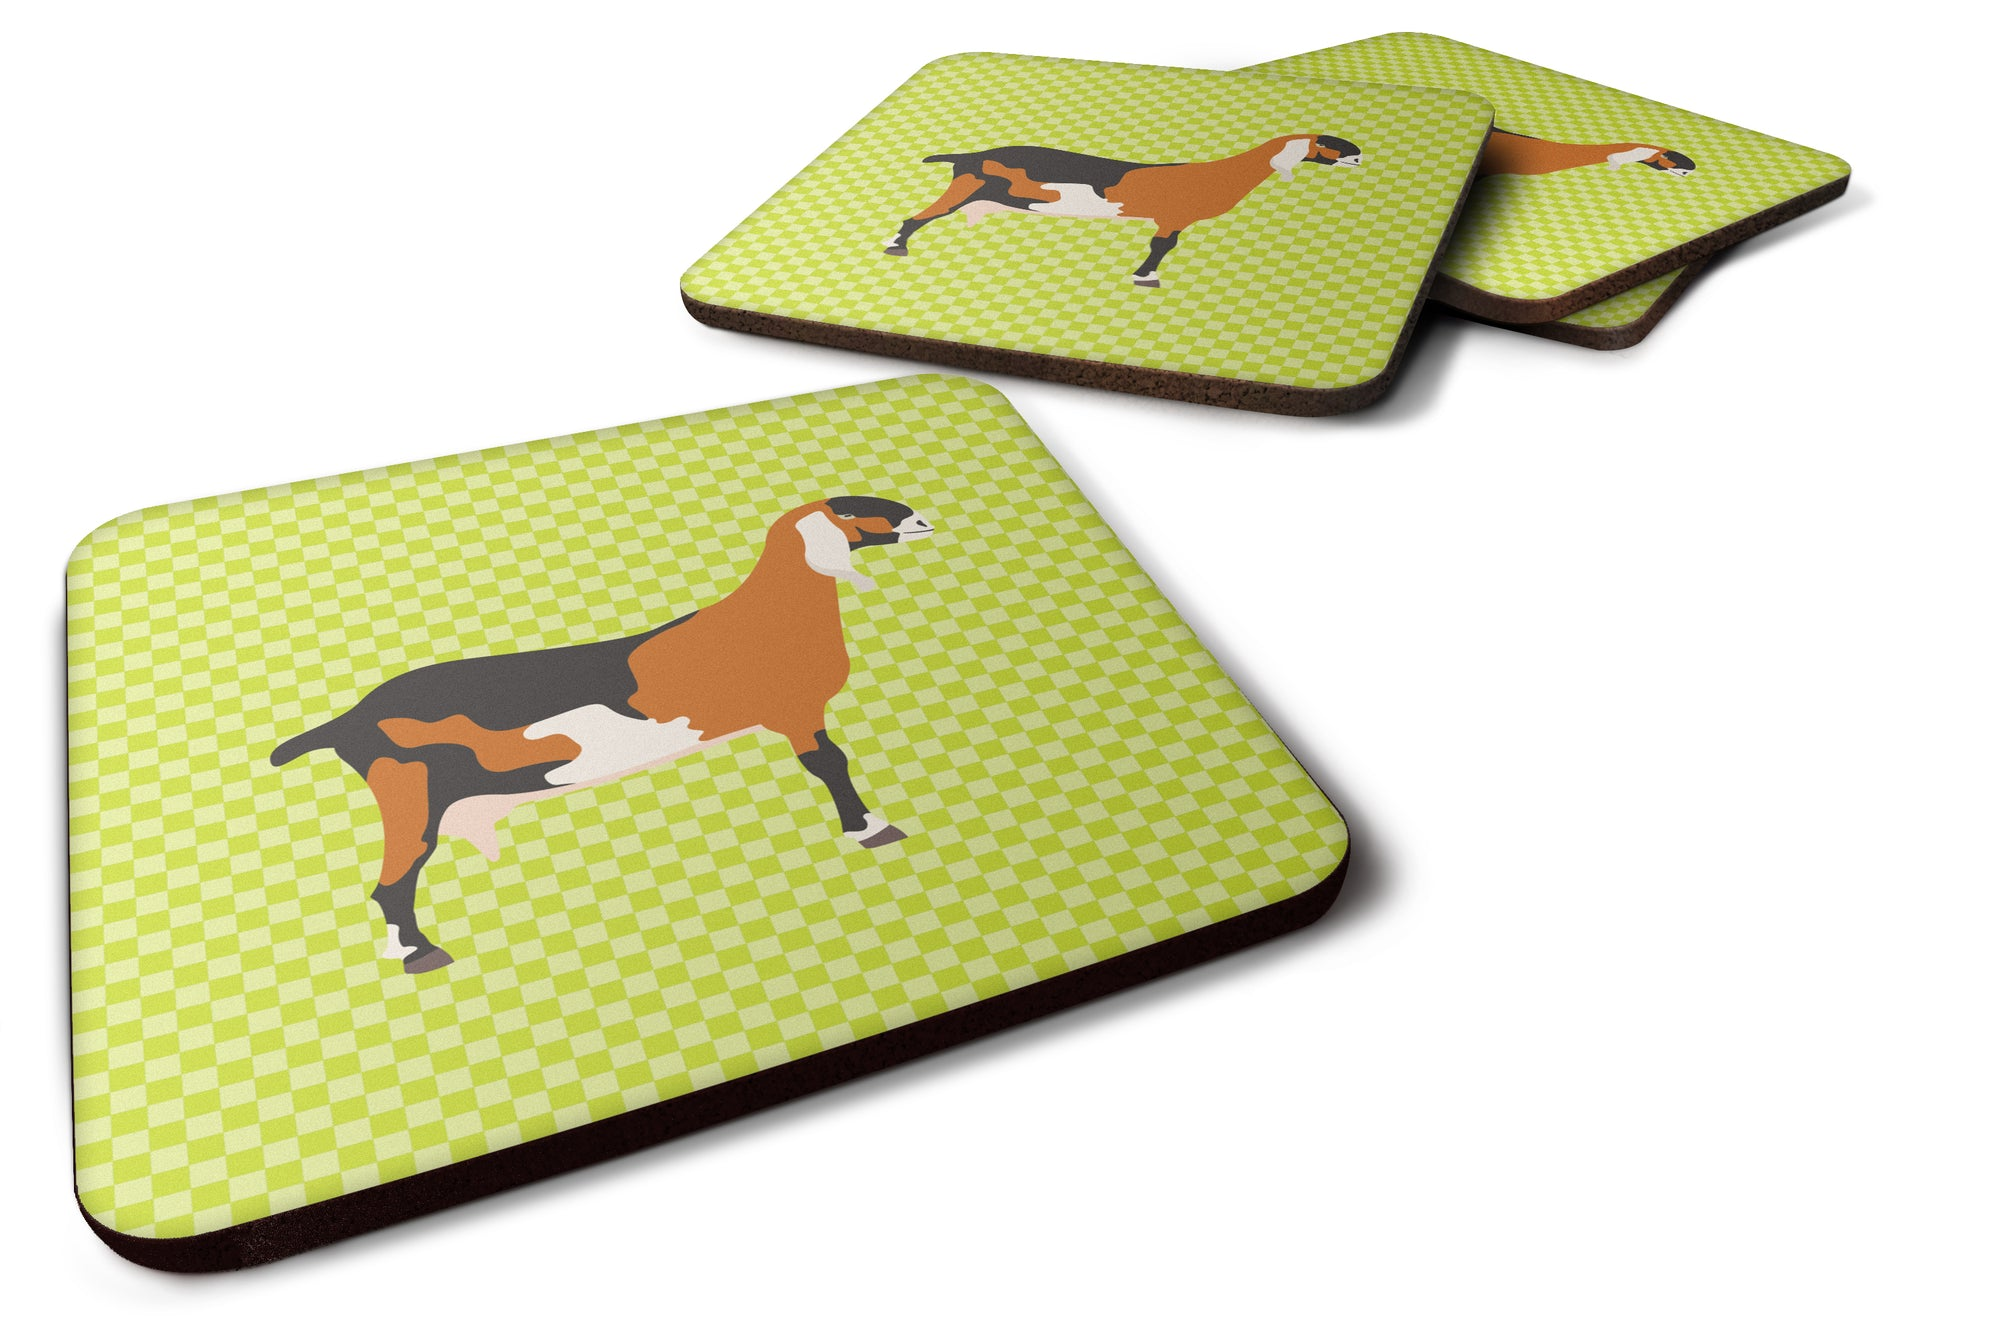 Anglo-nubian Nubian Goat Green Foam Coaster Set of 4 BB7709FC by Caroline's Treasures